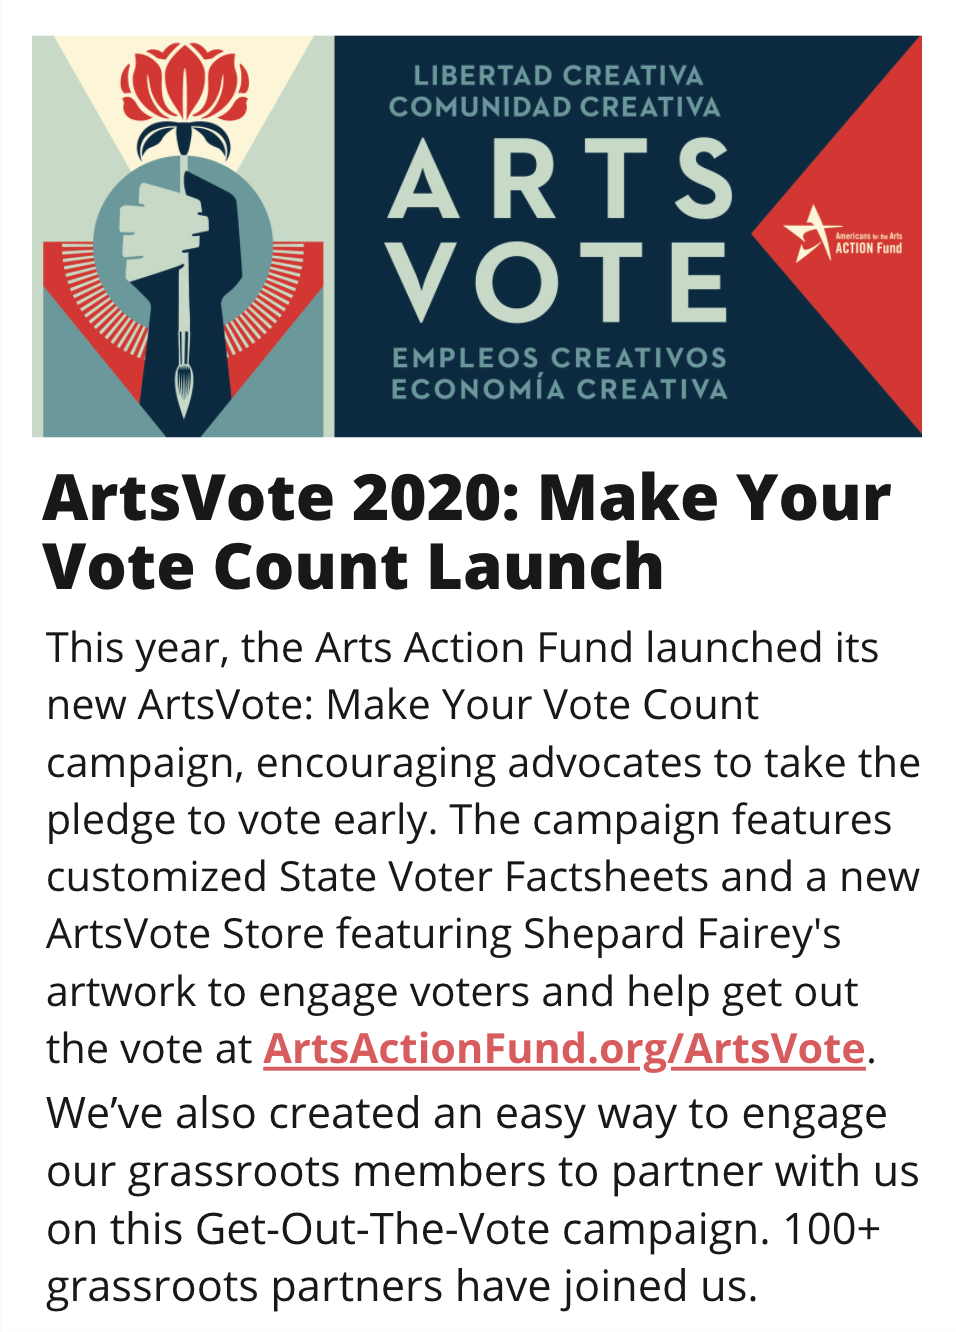 IMAGE: Shepard Fairey''s ArtVote artwork, horizontal version. TITLE: ArtsVote 2020: Make Your Vote Count LaunchSTORY: This year, the Arts Action Fund launched its new ArtsVote: Make Your Vote Count campaign, encouraging advocates to take the pledge to vote early. The campaign features customized State Voter Factsheets and a new ArtsVote Store featuring Shepard Fairey''s artwork to engage voters and help get out the vote at ArtsActionFund.org/ArtsVote. We've also created an easy way to engage our grassroots members to partner with us on this Get-Out-The-Vote campaign. 100+ grassroots partners have joined us.